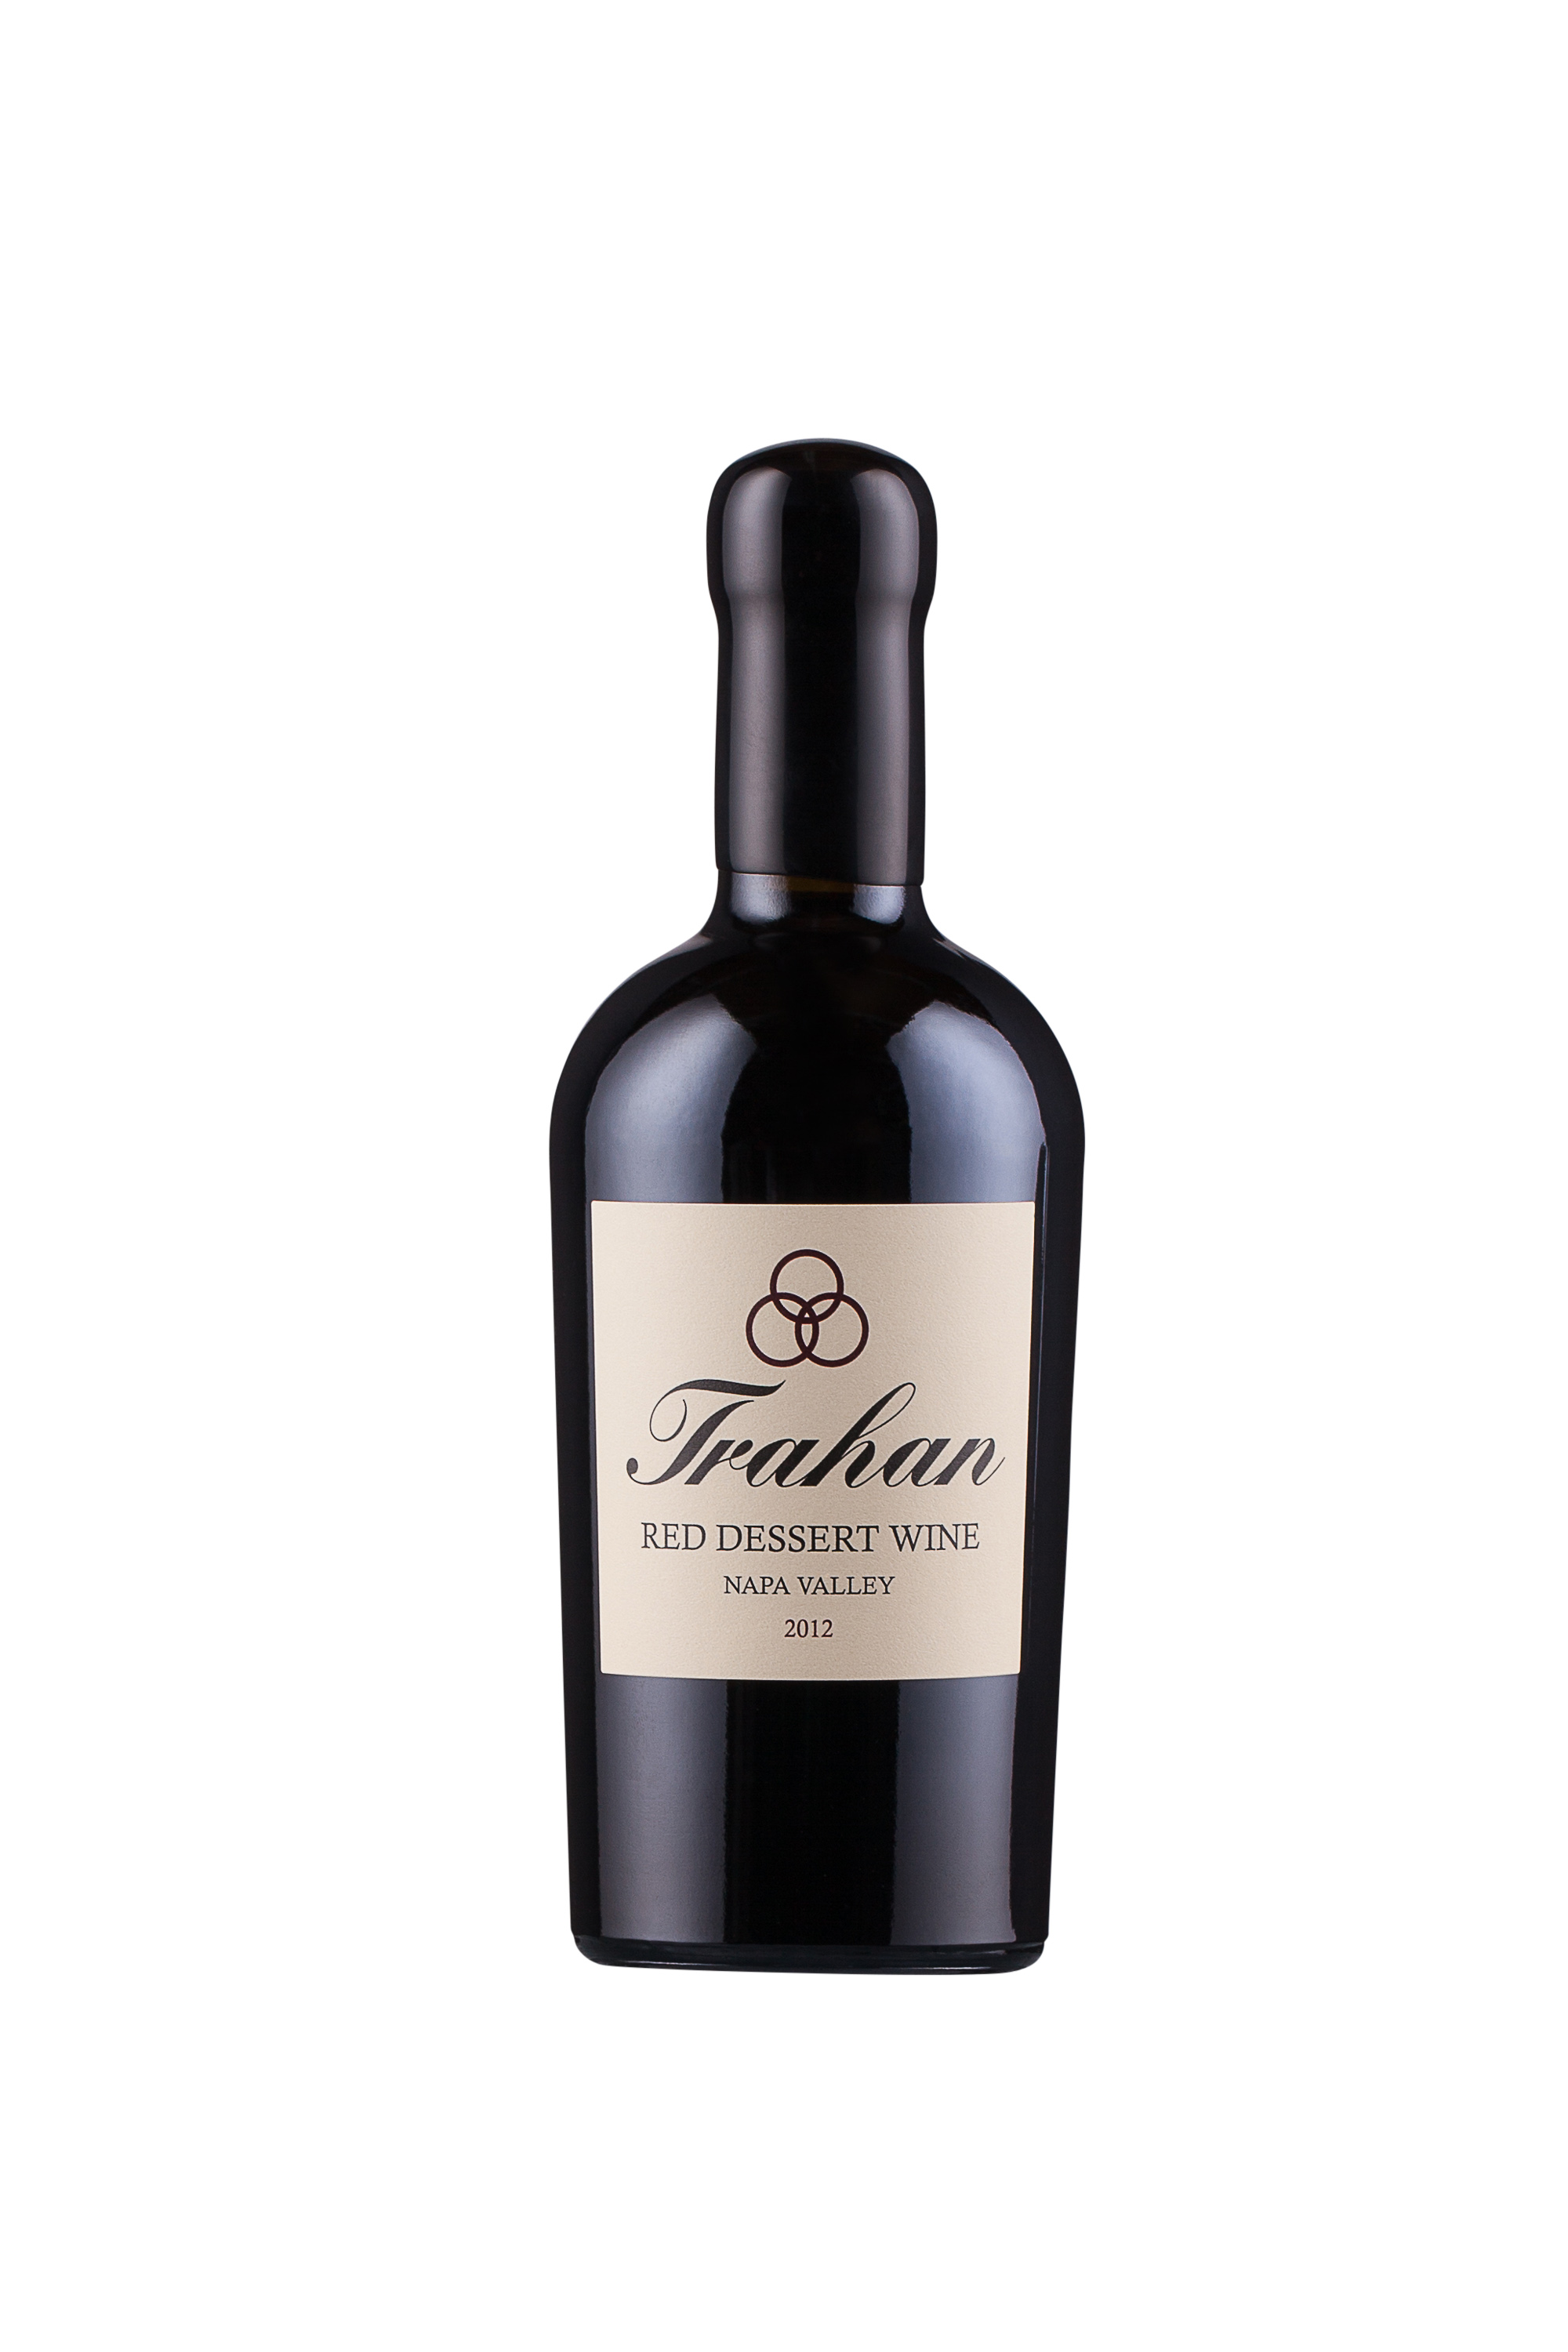 Trahan 2014 Dessert Wine Napa Valley Product Image